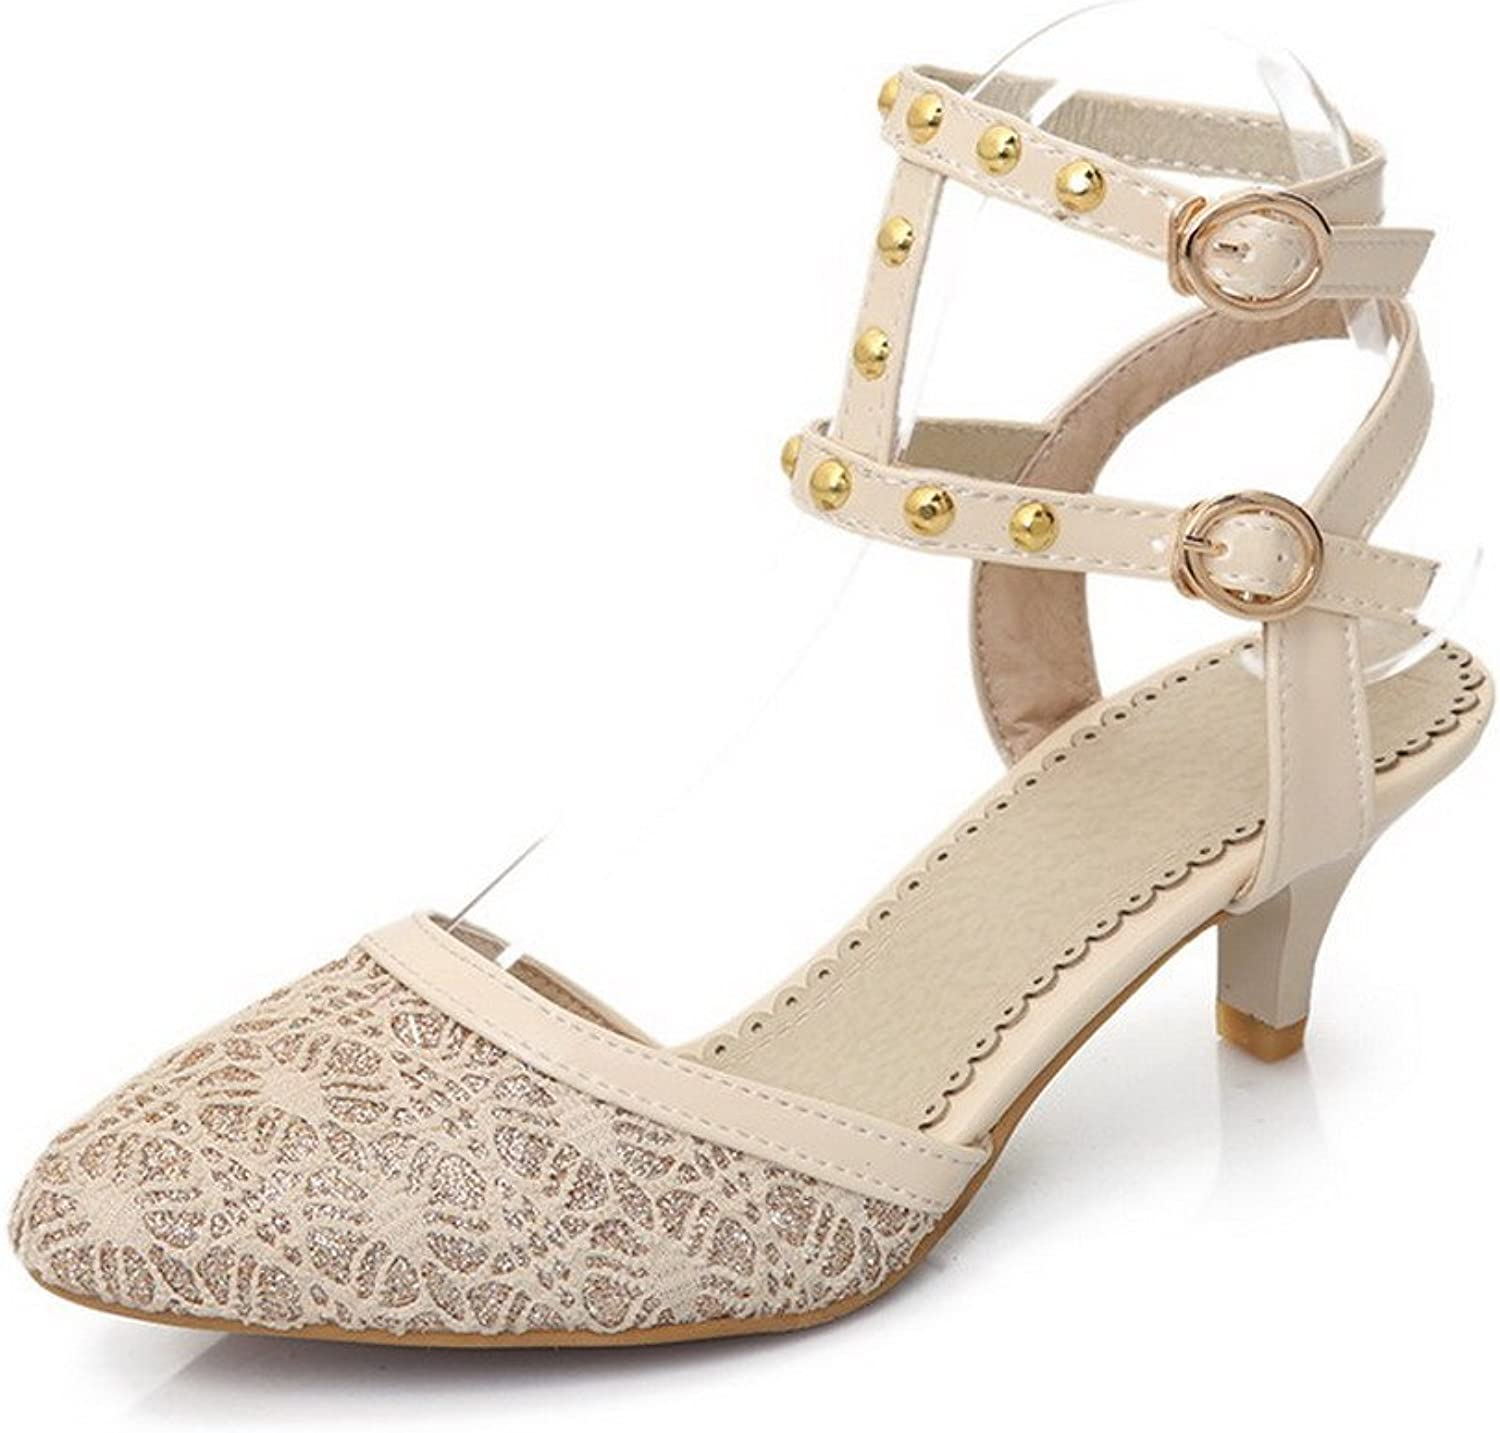 AmoonyFashion Women's Blend Materials Solid Buckle Closed Toe Low Heels Sandals